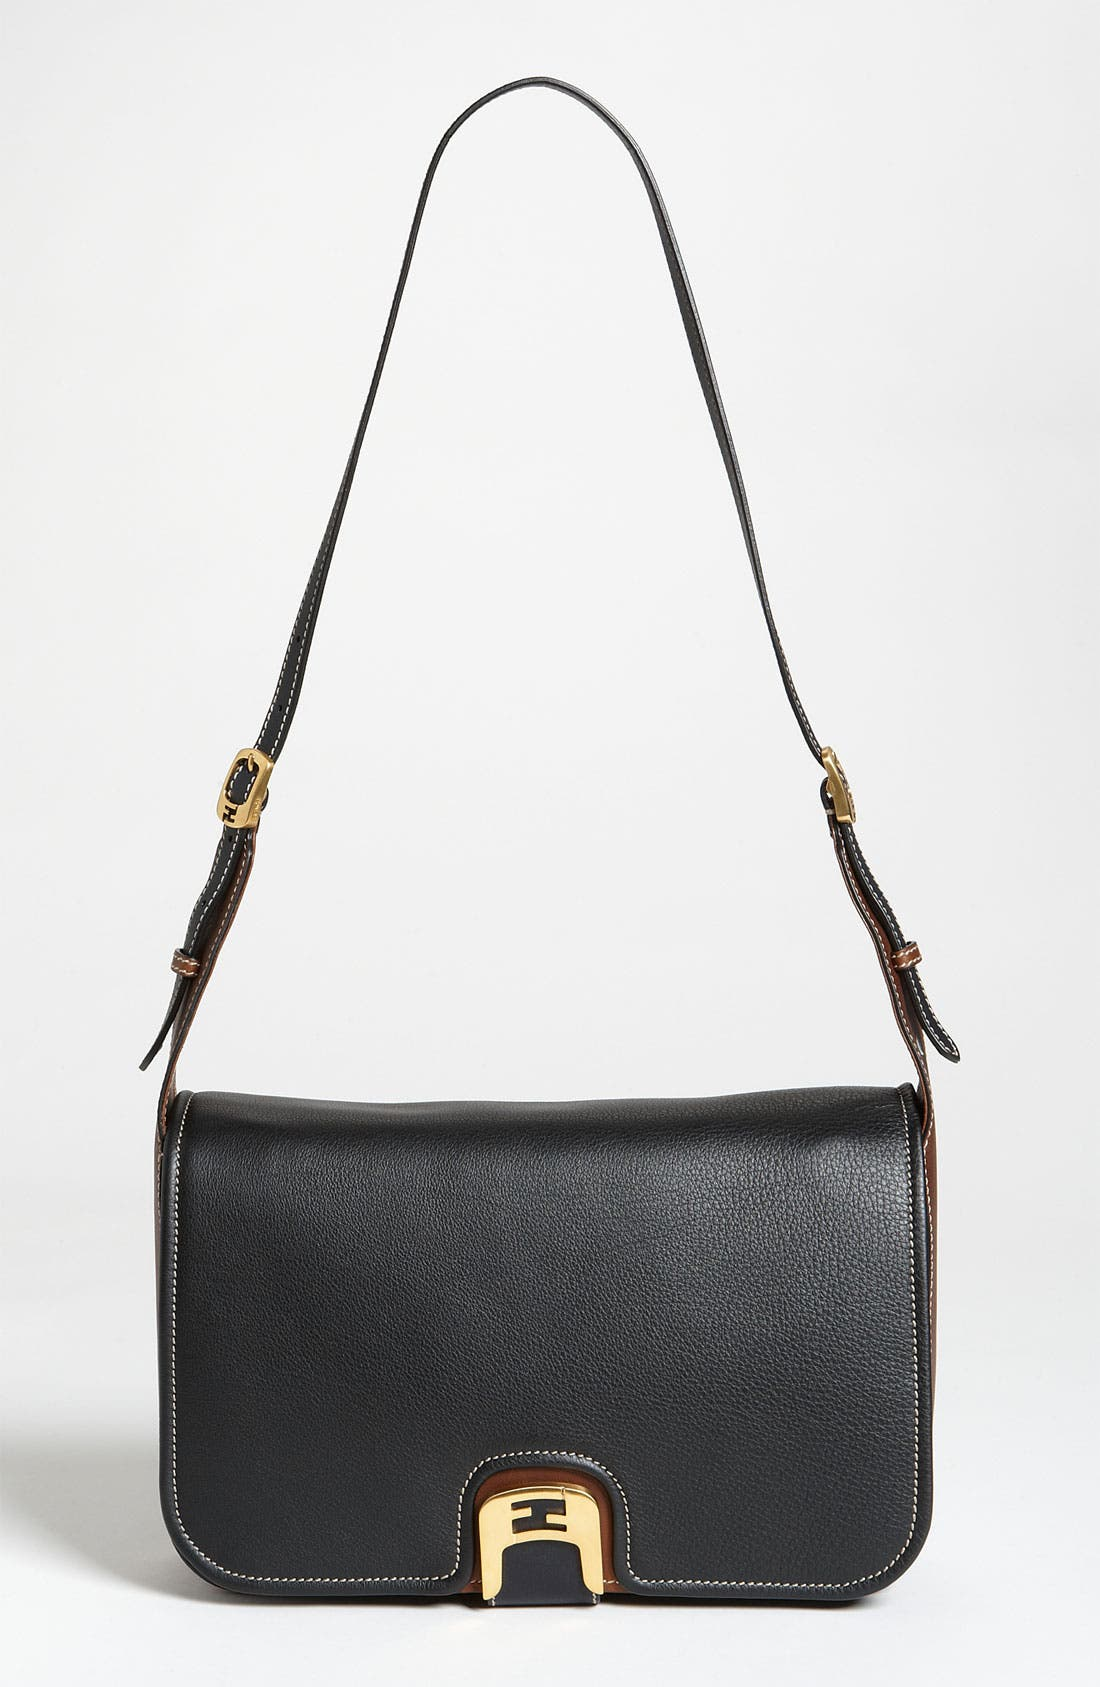 'Chameleon' Leather Shoulder Bag,                         Main,                         color, Black/ Brown